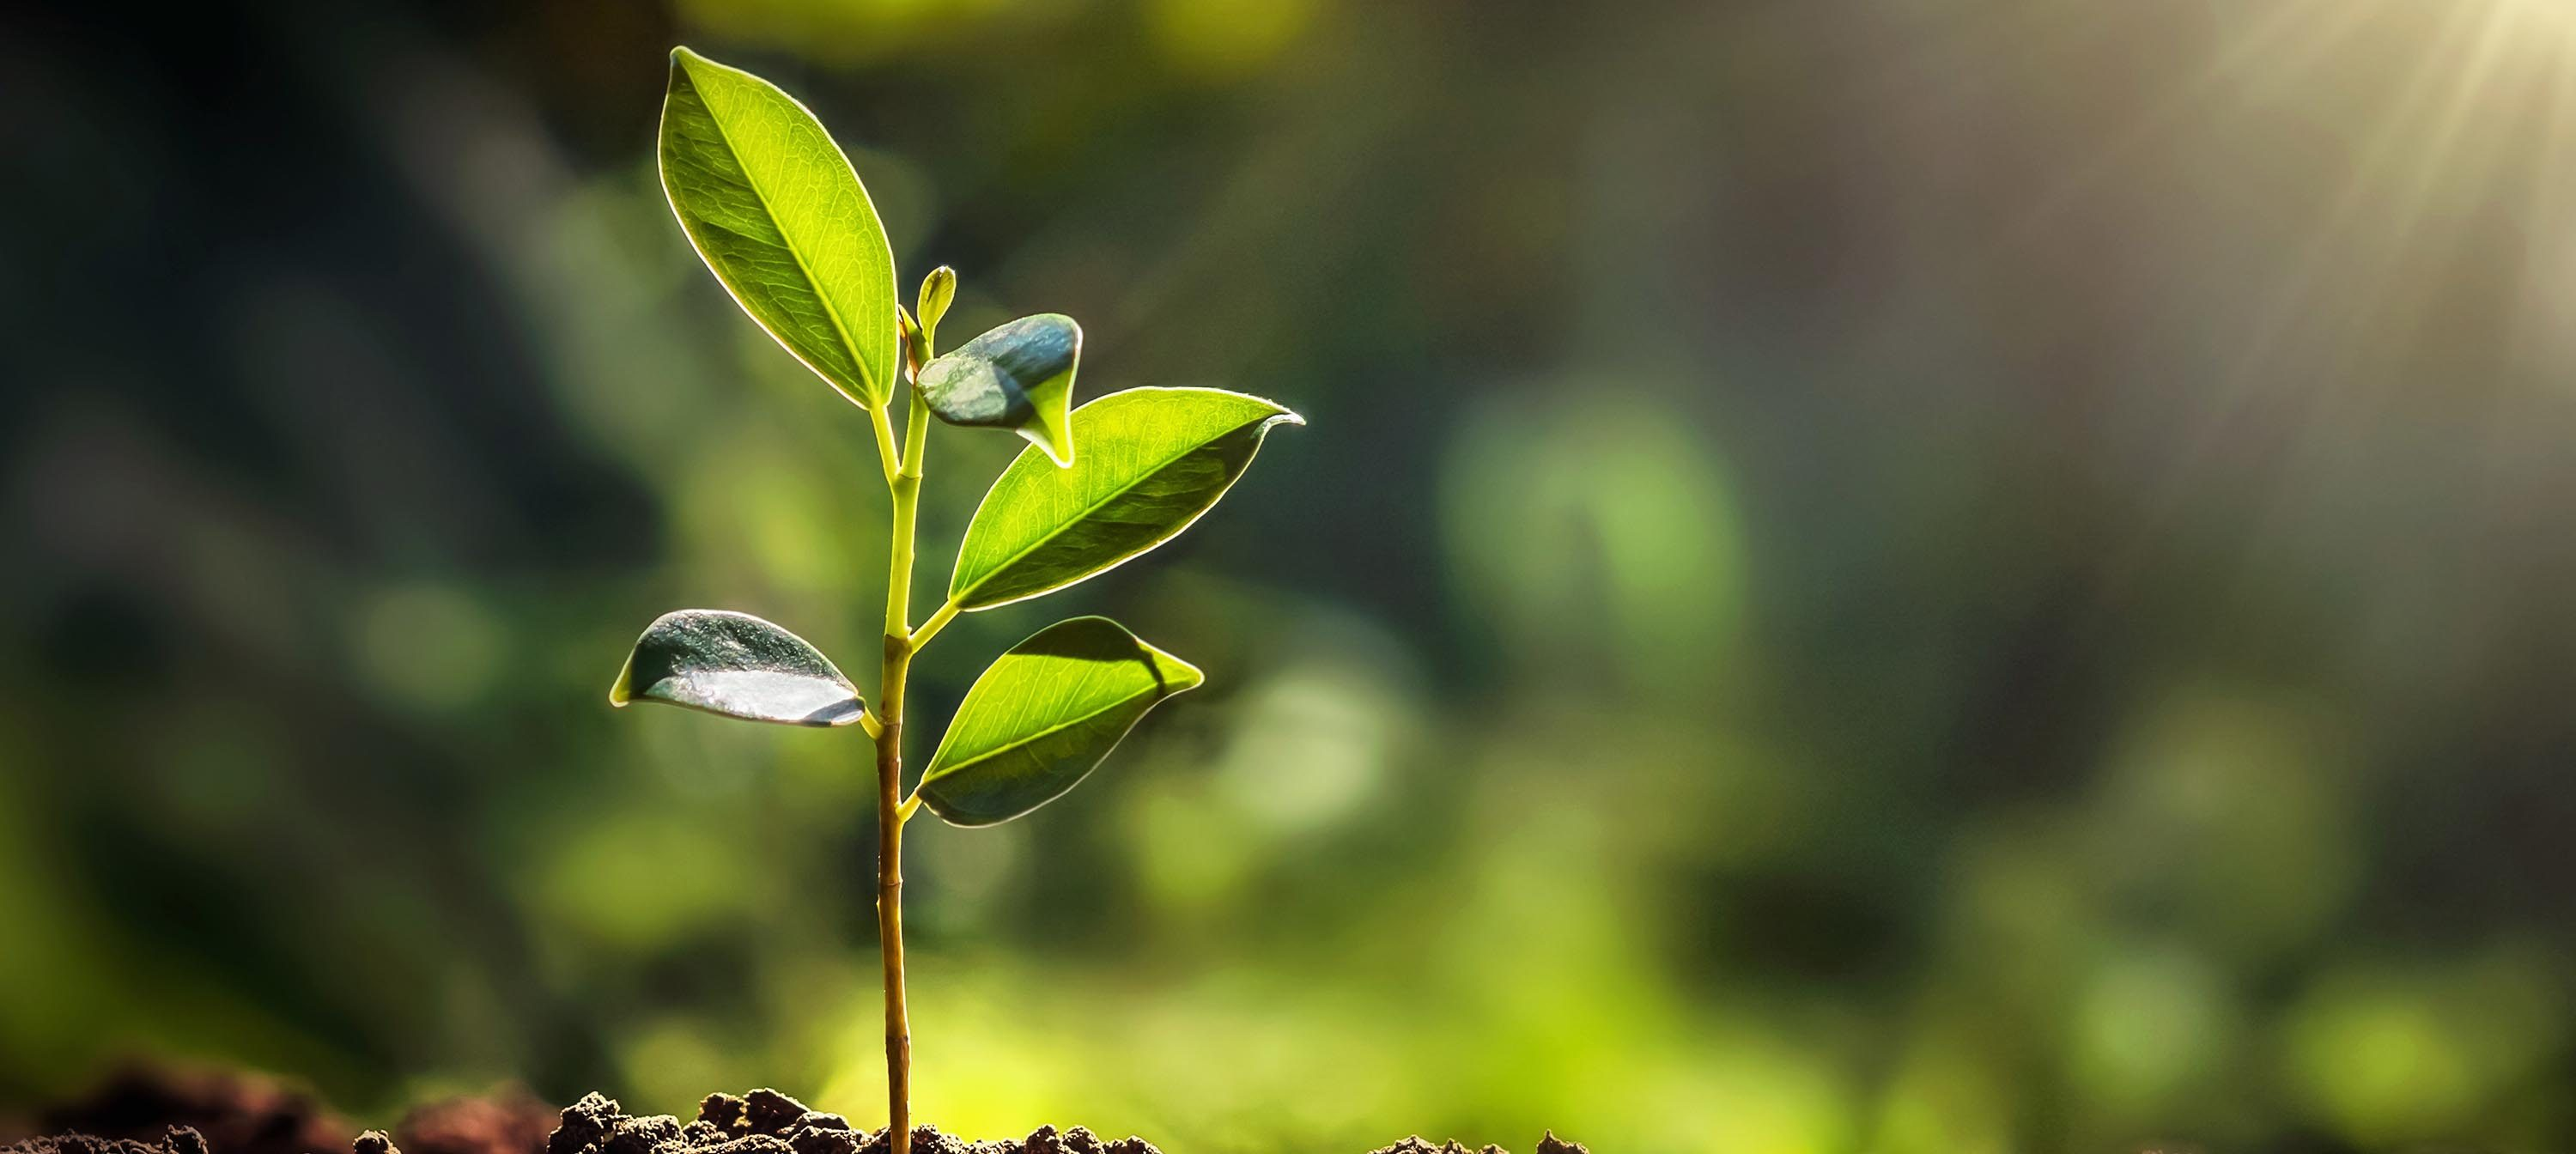 A photo of a small tree sapling in fresh soil. The sunlight is shining through the leaves. The background is heavily blurred by seems to suggest a forest or woodland scene. This is being used symbolically to denote organic, natural growth.